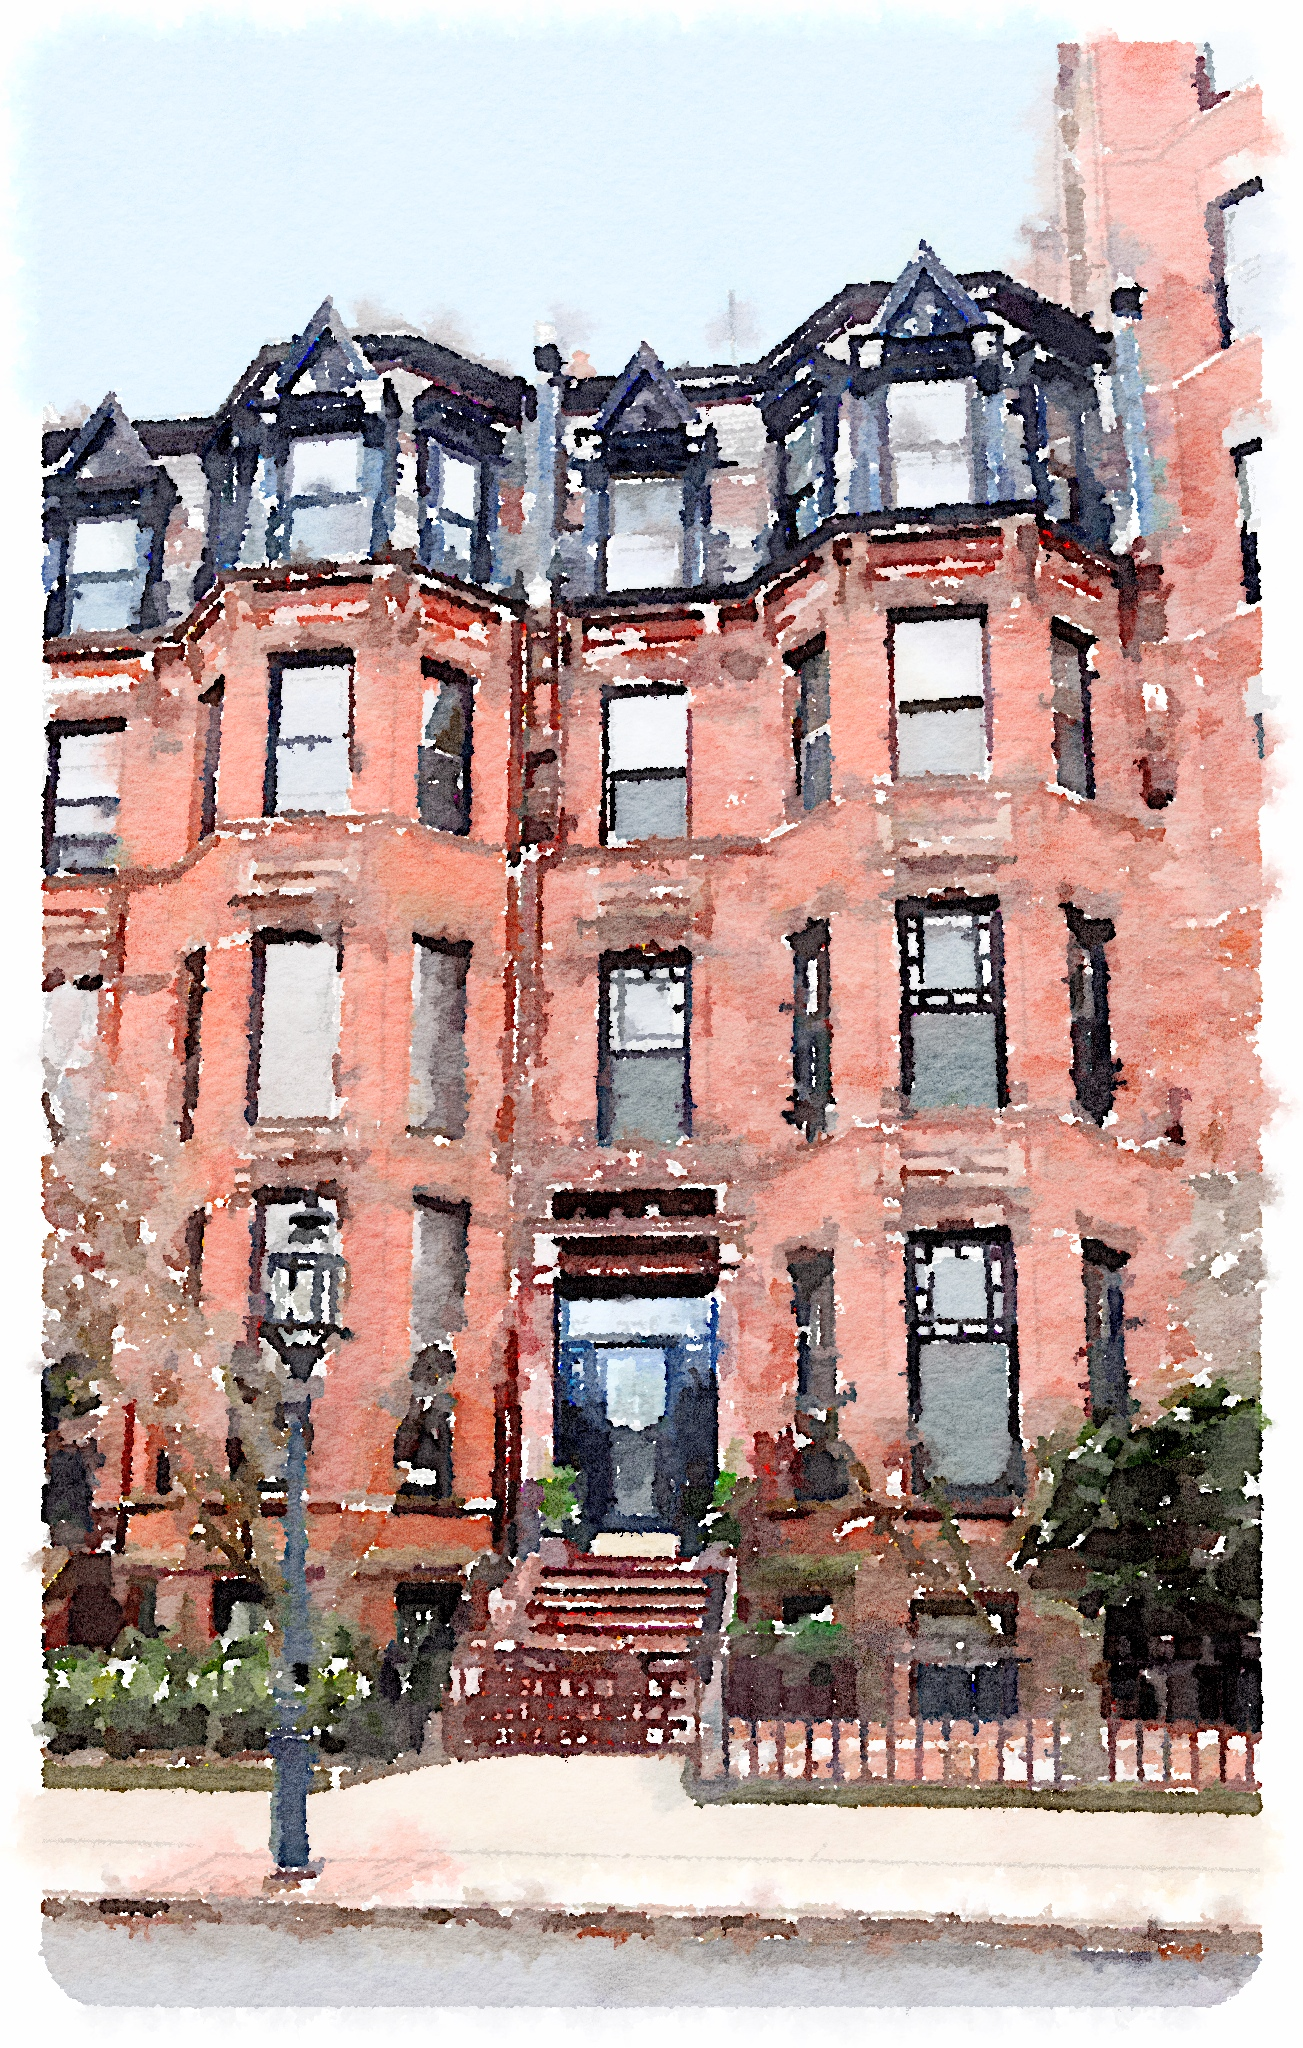 288 Commonwealth Avenue, A Back Bay Brownstone ready to be transformed.  Learn more at  288CommAve.com .